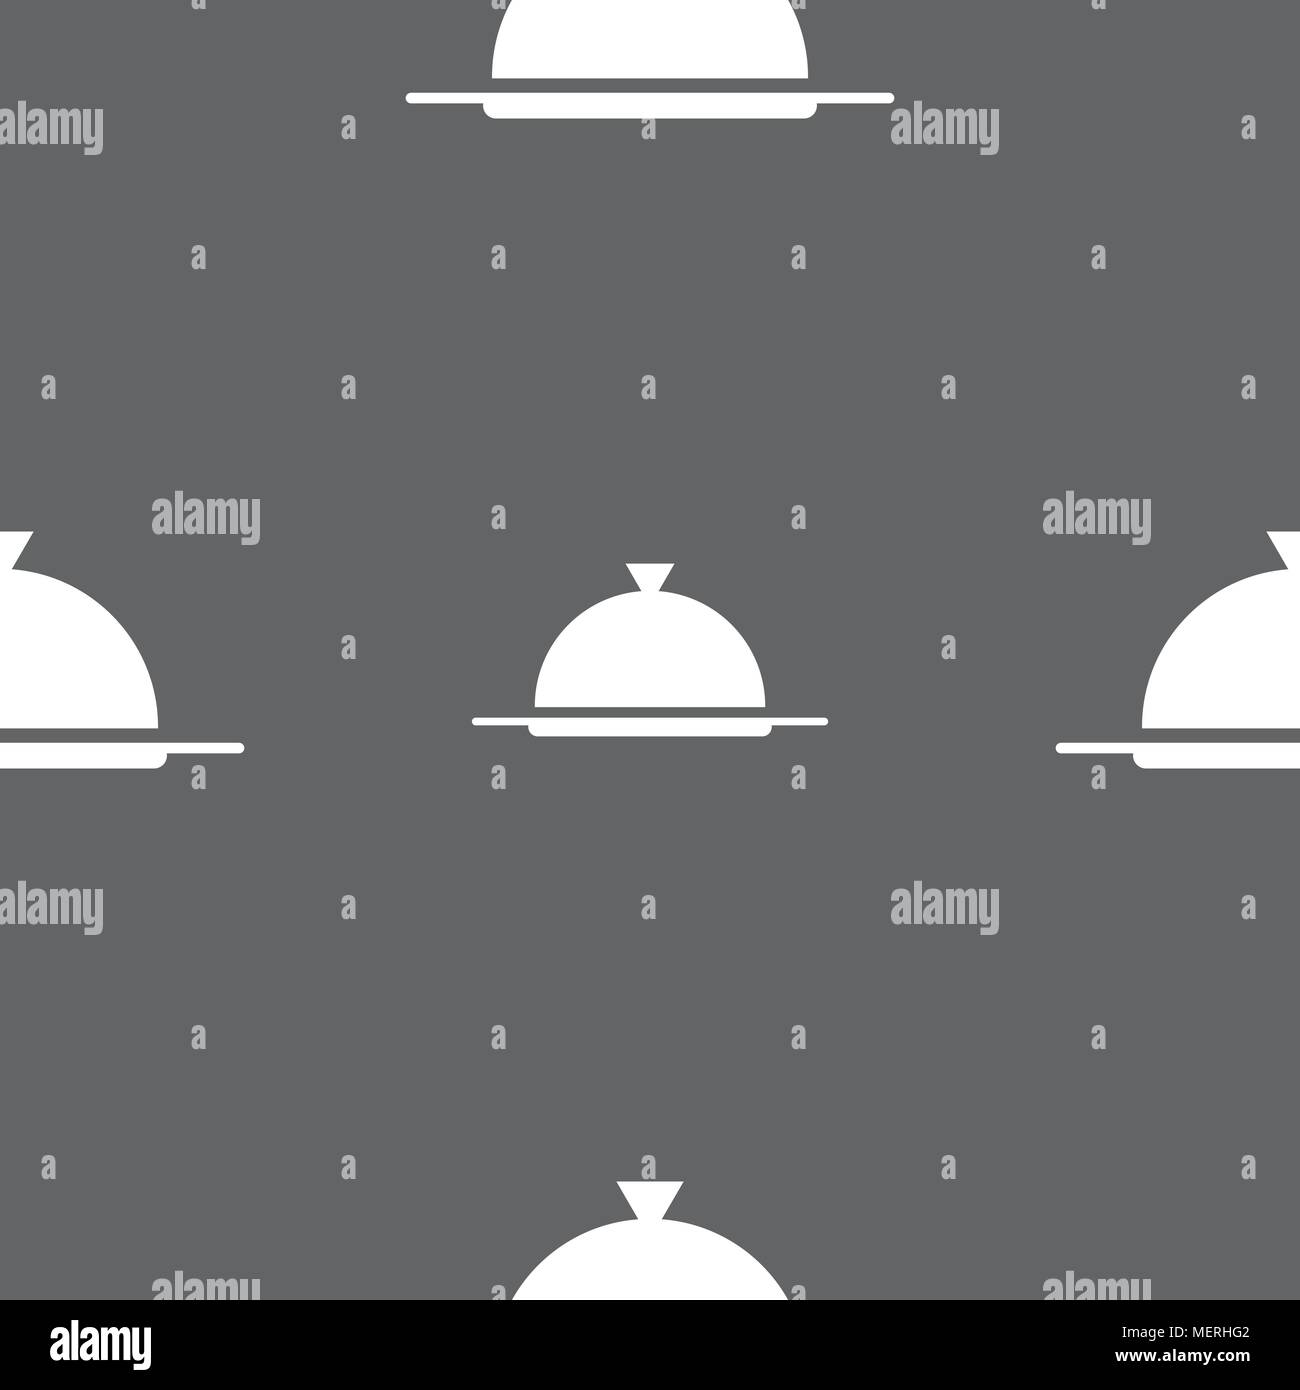 Food Platter Serving Sign Icon Table Setting In Restaurant